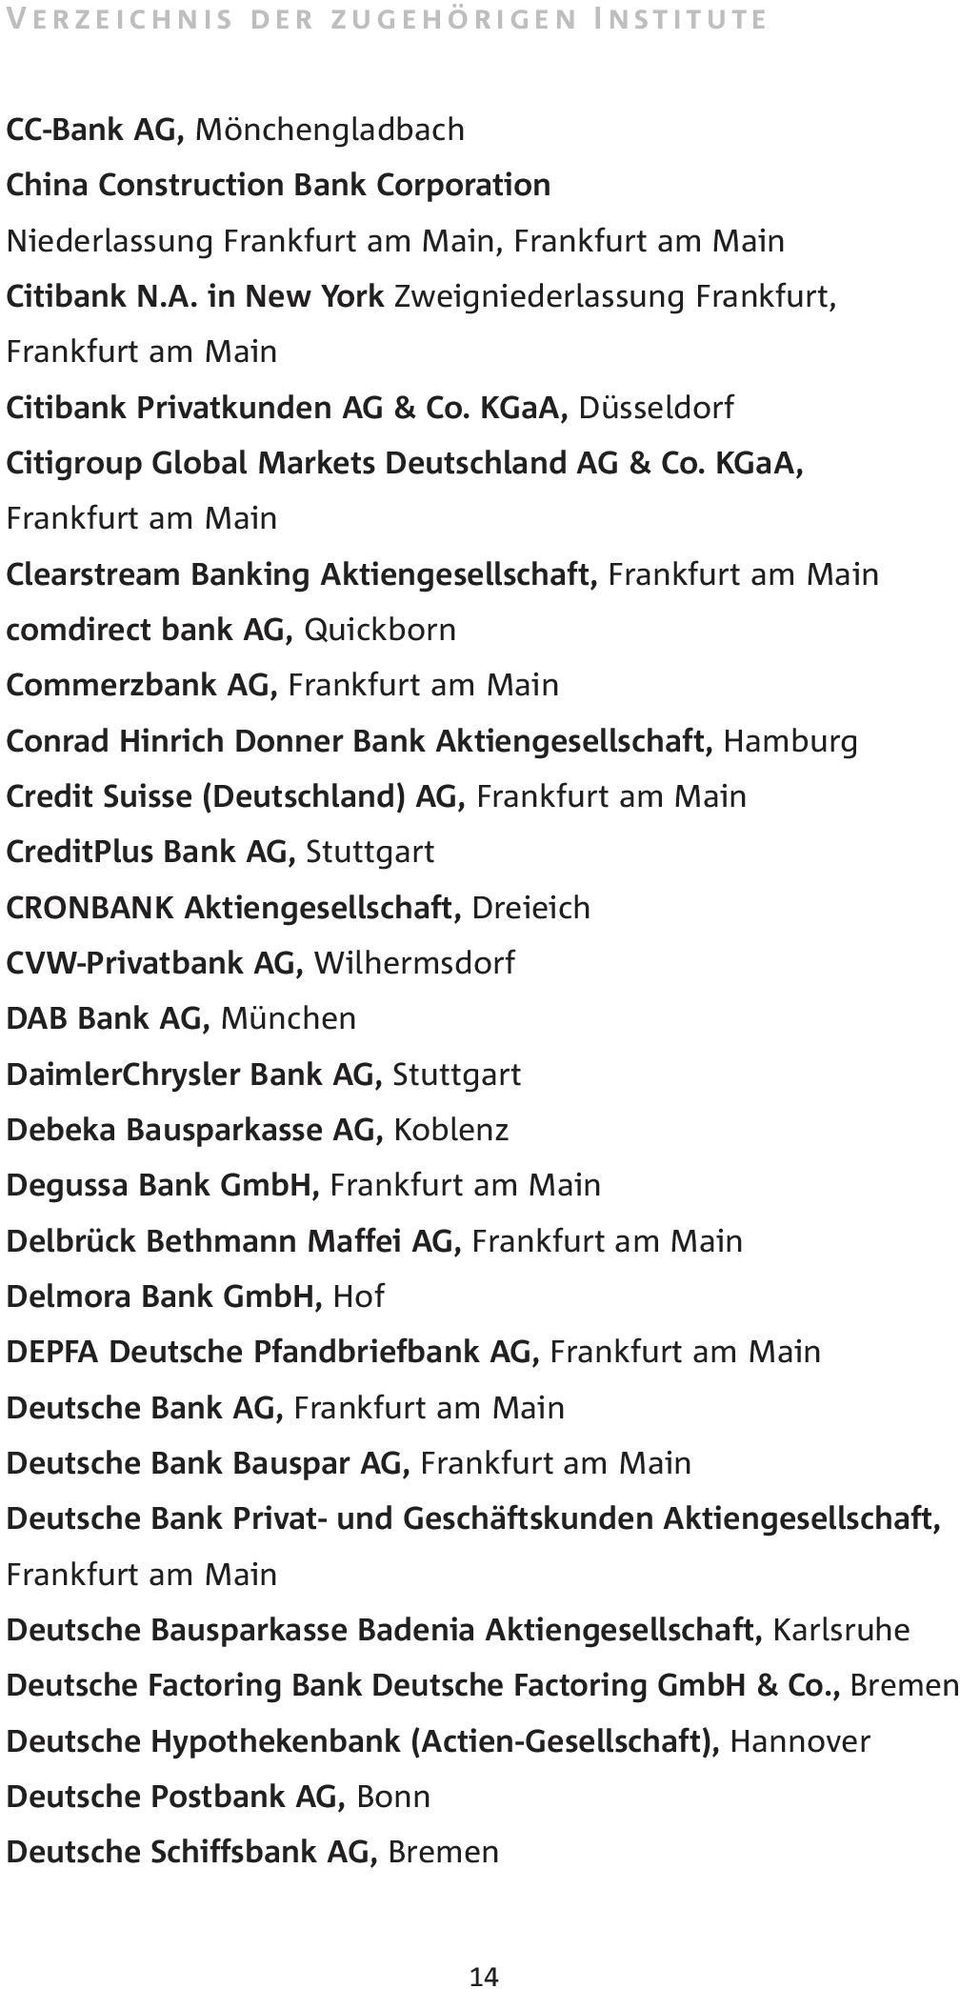 KGaA, Clearstream Banking Aktiengesellschaft, comdirect bank AG, Quickborn Commerzbank AG, Conrad Hinrich Donner Bank Aktiengesellschaft, Hamburg Credit Suisse (Deutschland) AG, CreditPlus Bank AG,